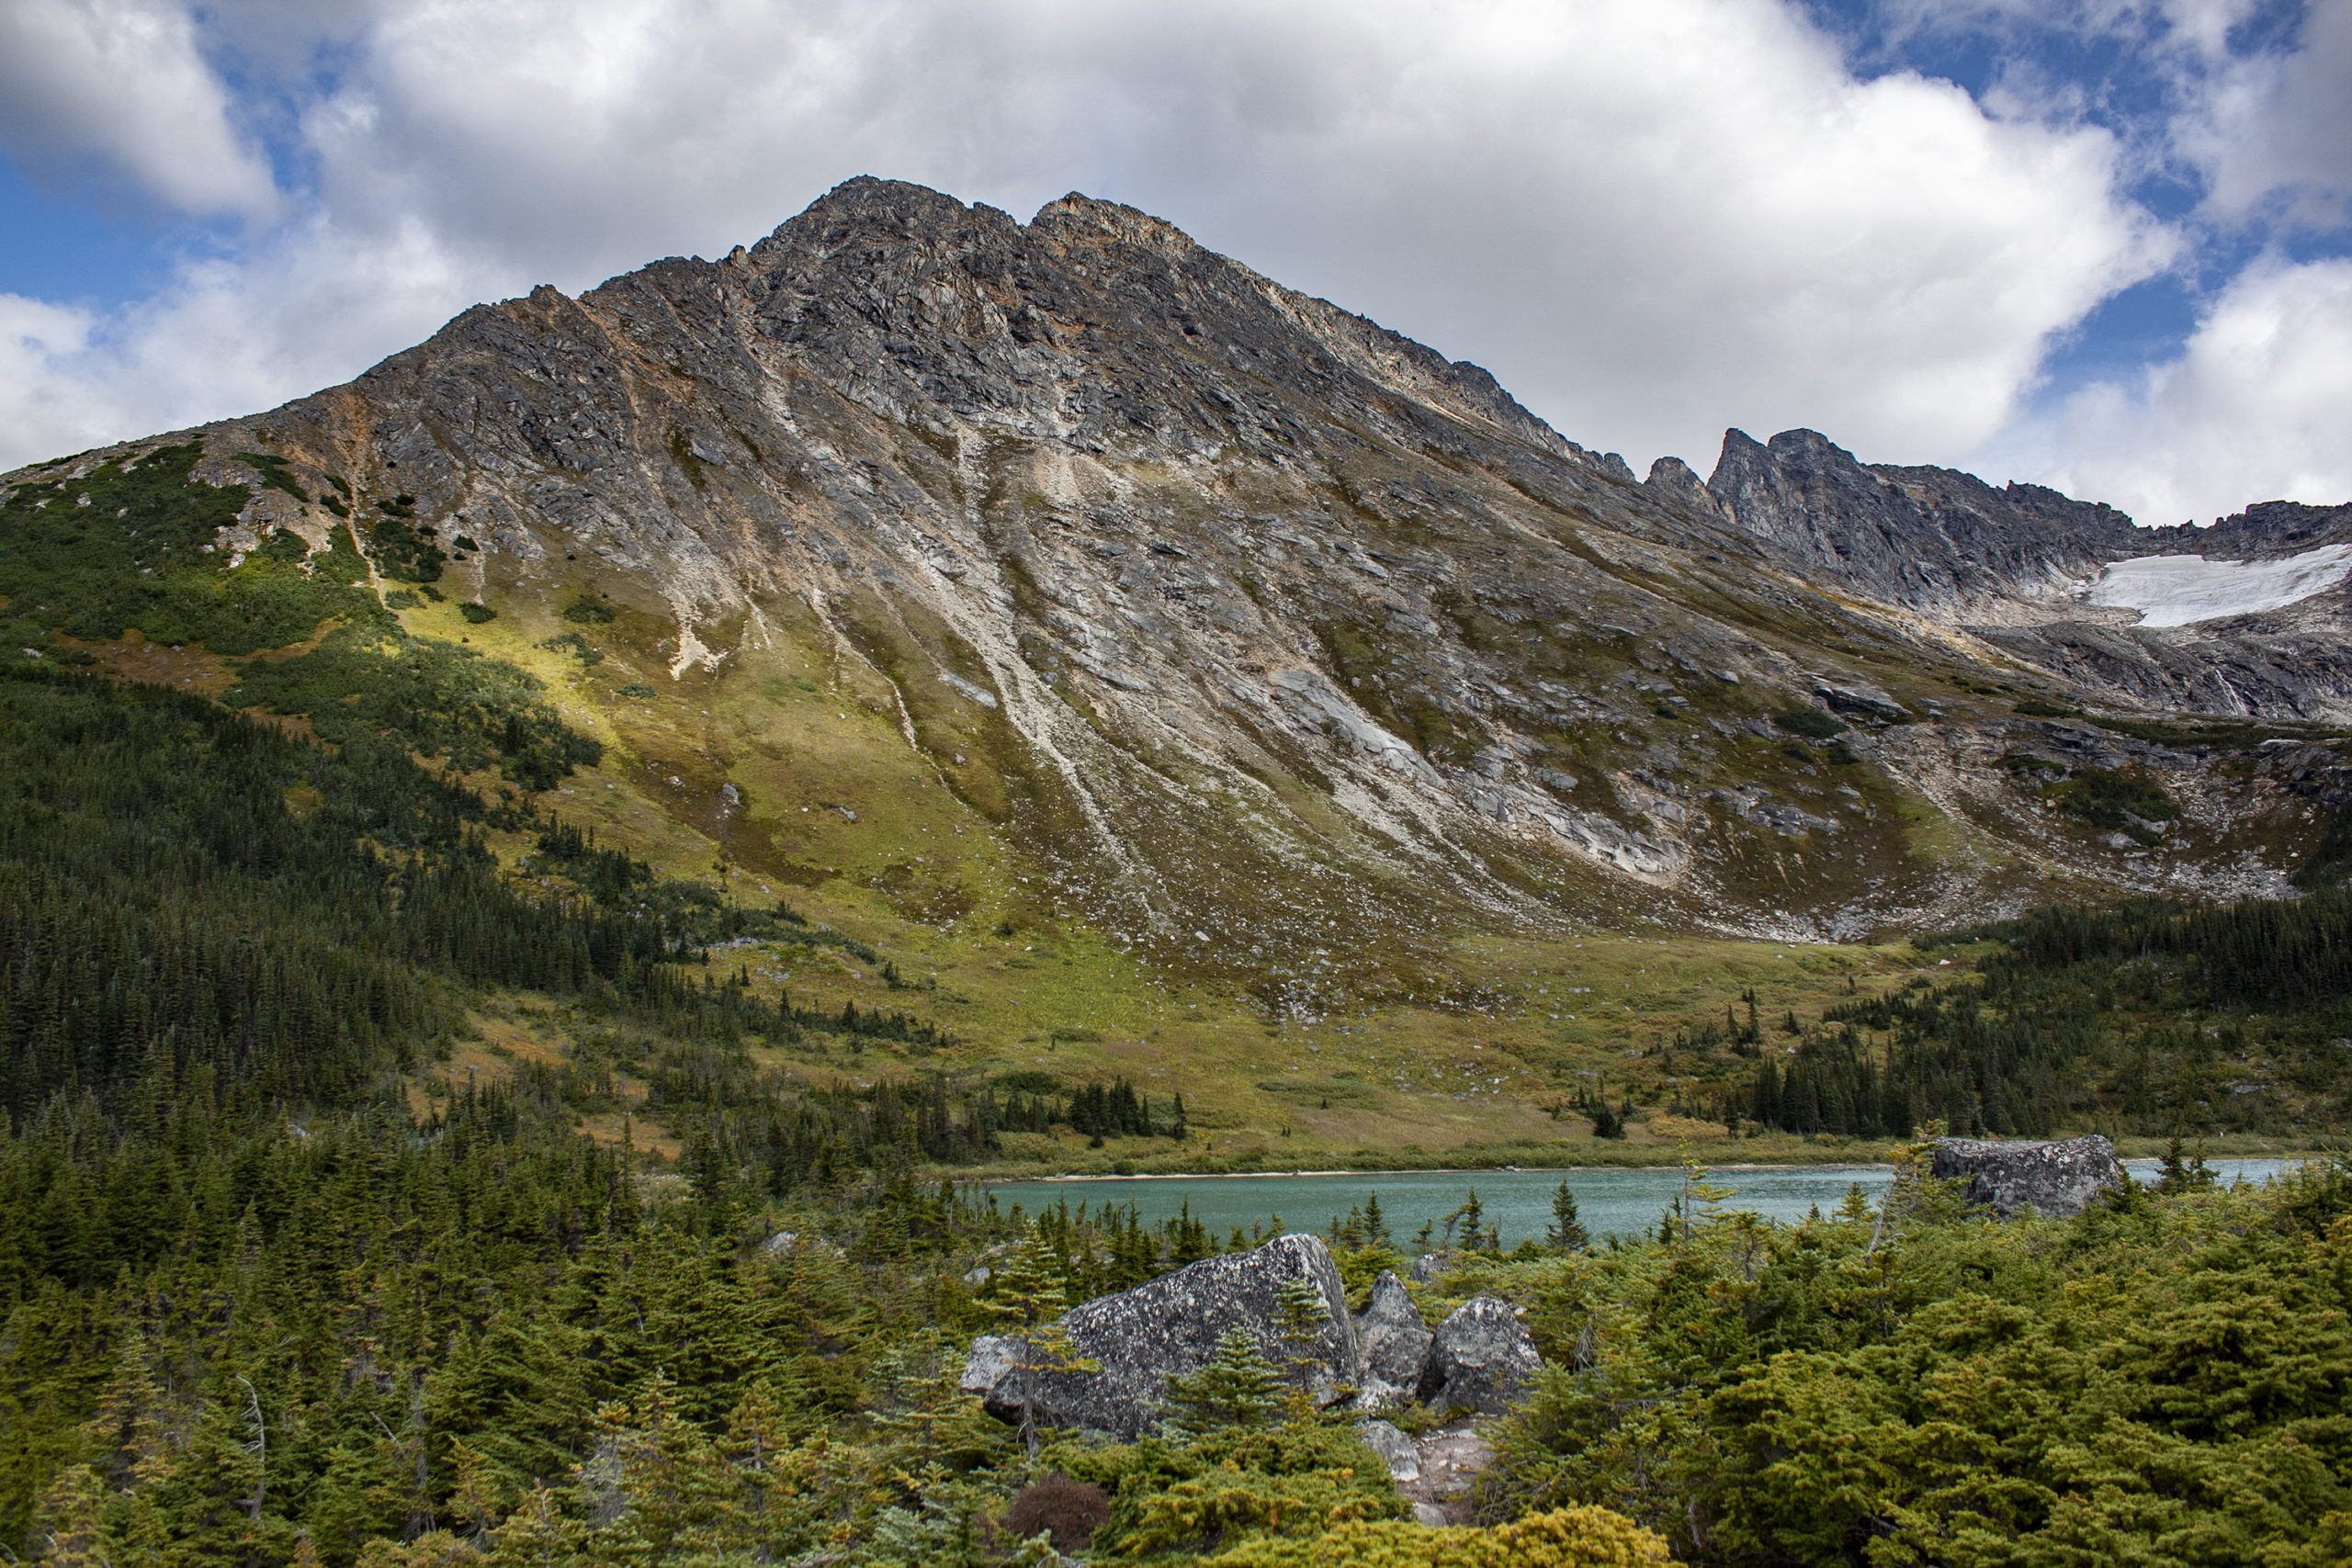 Upper Dewey Lake in Skagway, Alaska, pictured on Aug. 18, 2019. (Steve Silva)